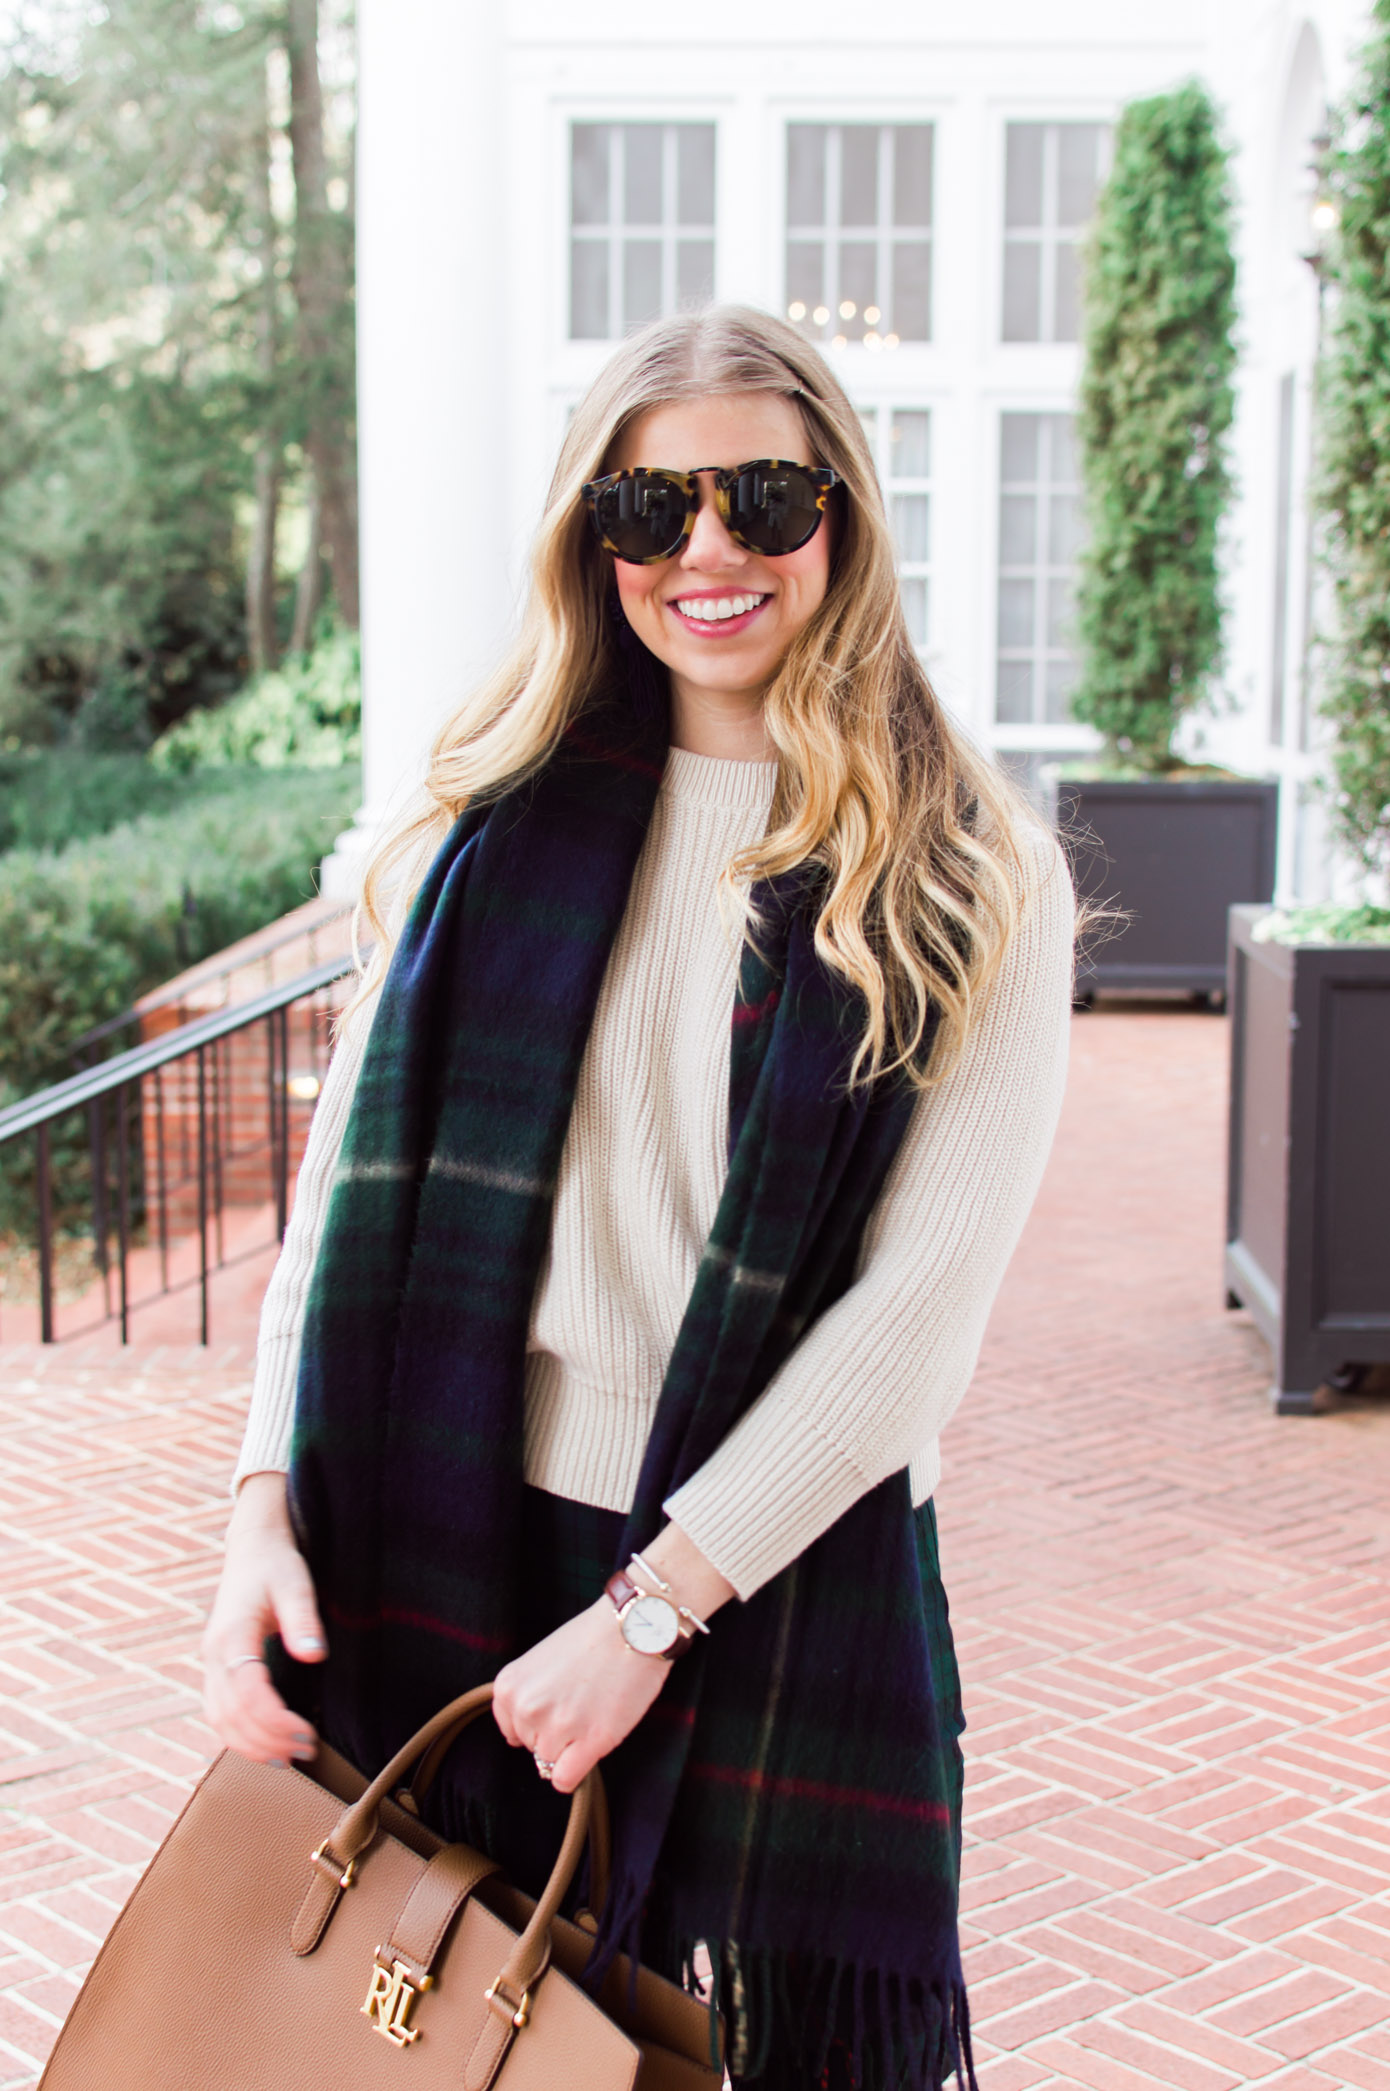 Plaid Scarf | 10 Ways to Mix Patterns Like a Fashion Blogger | Louella Reese Life & Style Blog